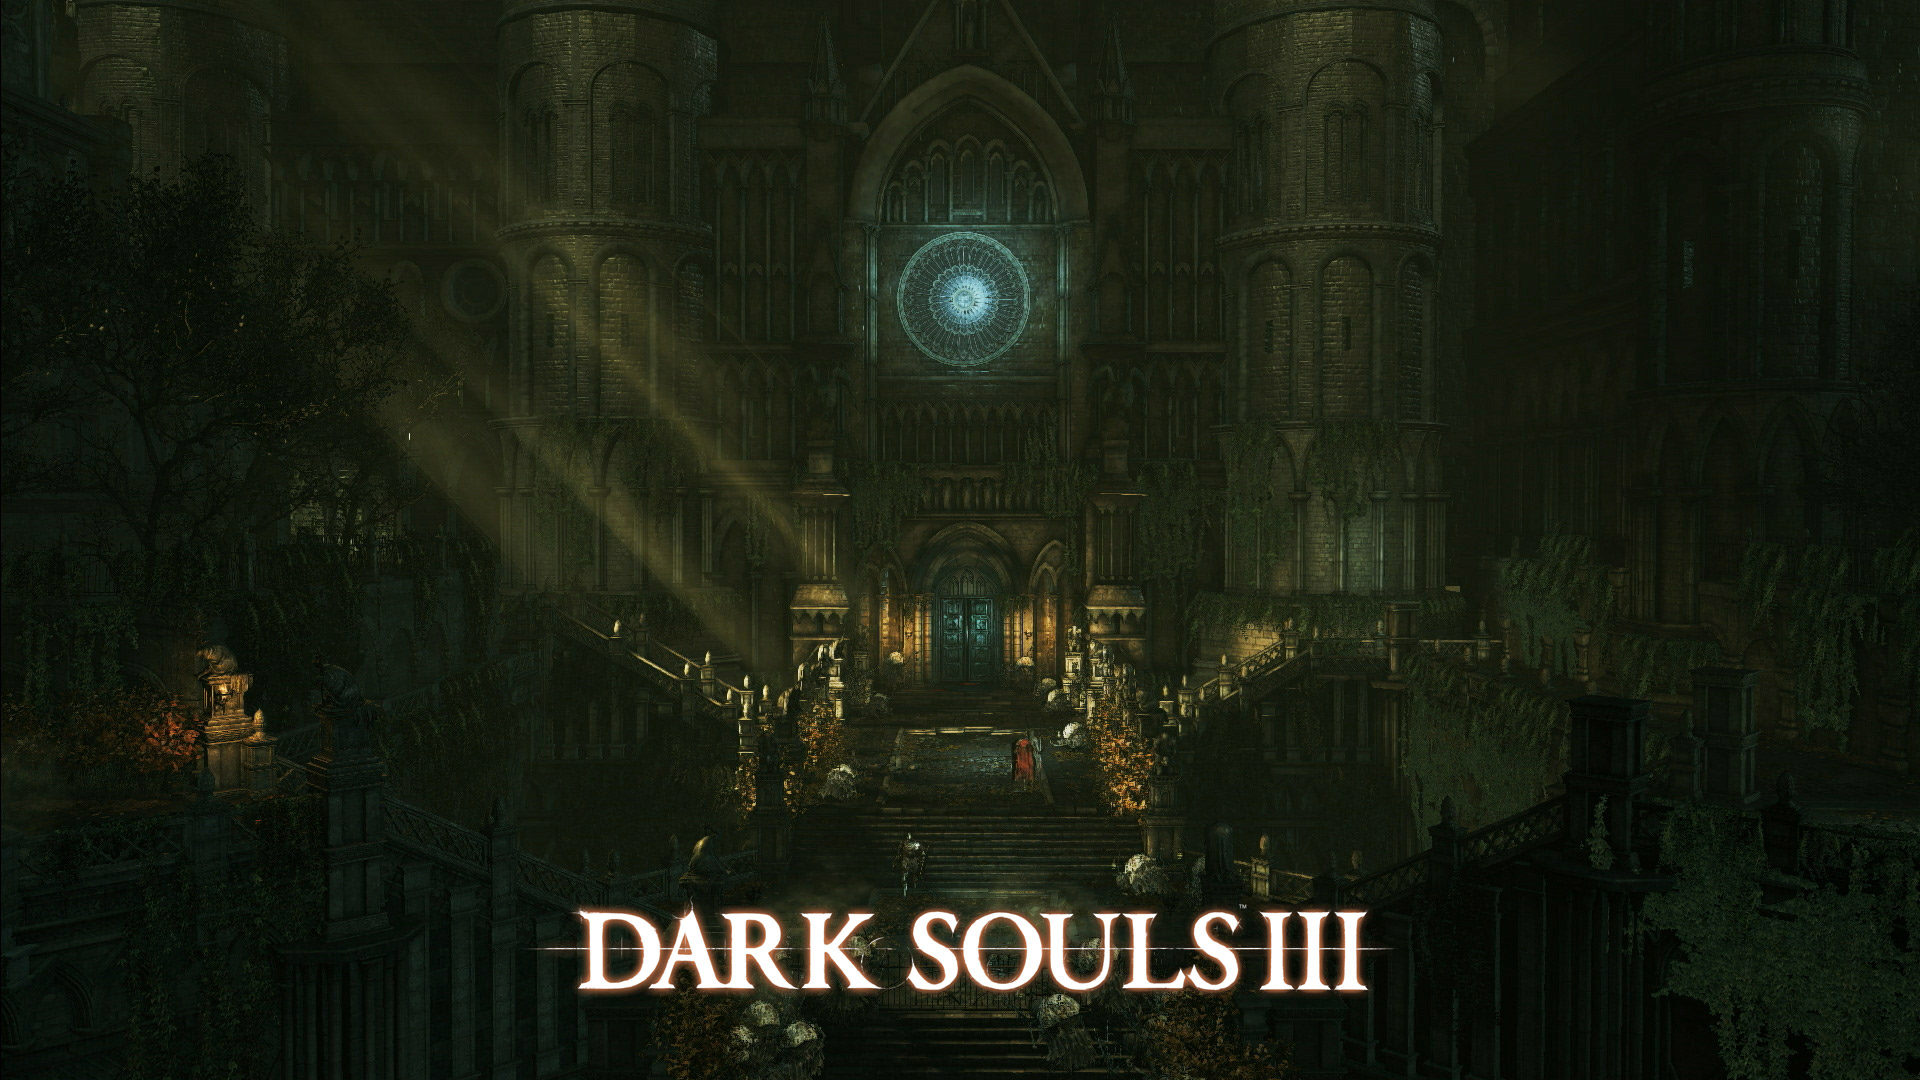 Dark Souls 3 wallpaper 6